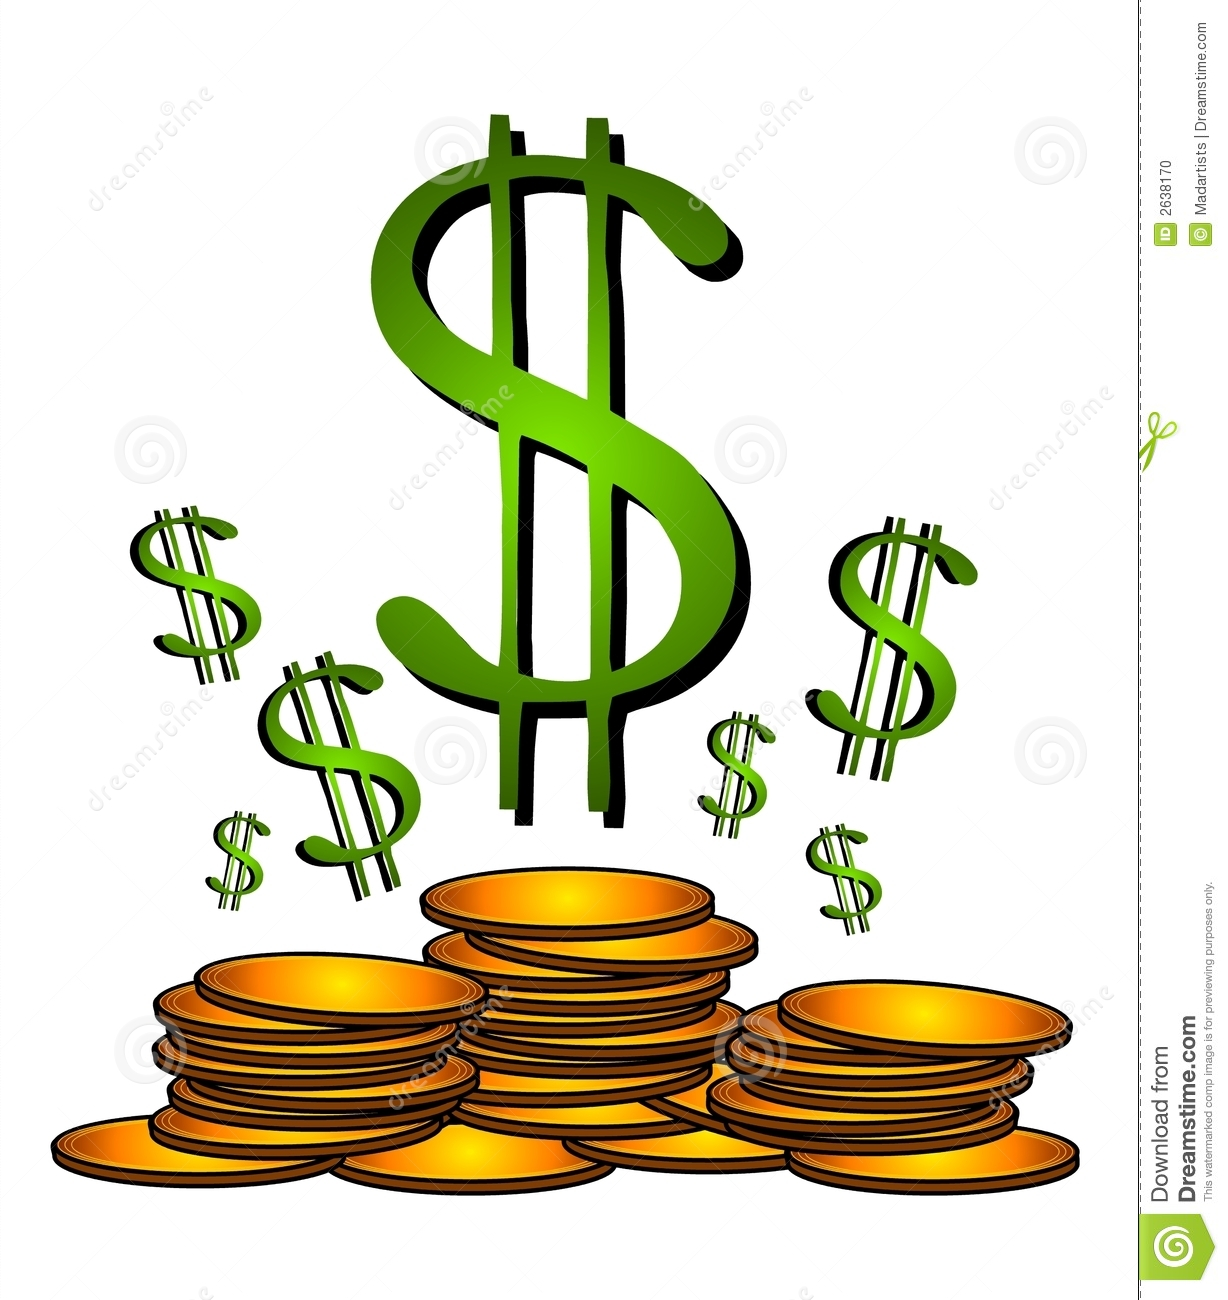 gold coins dollar sign clipart stock illustration illustration of rh dreamstime com Dollar Sign Symbol Dollar Sign Icon